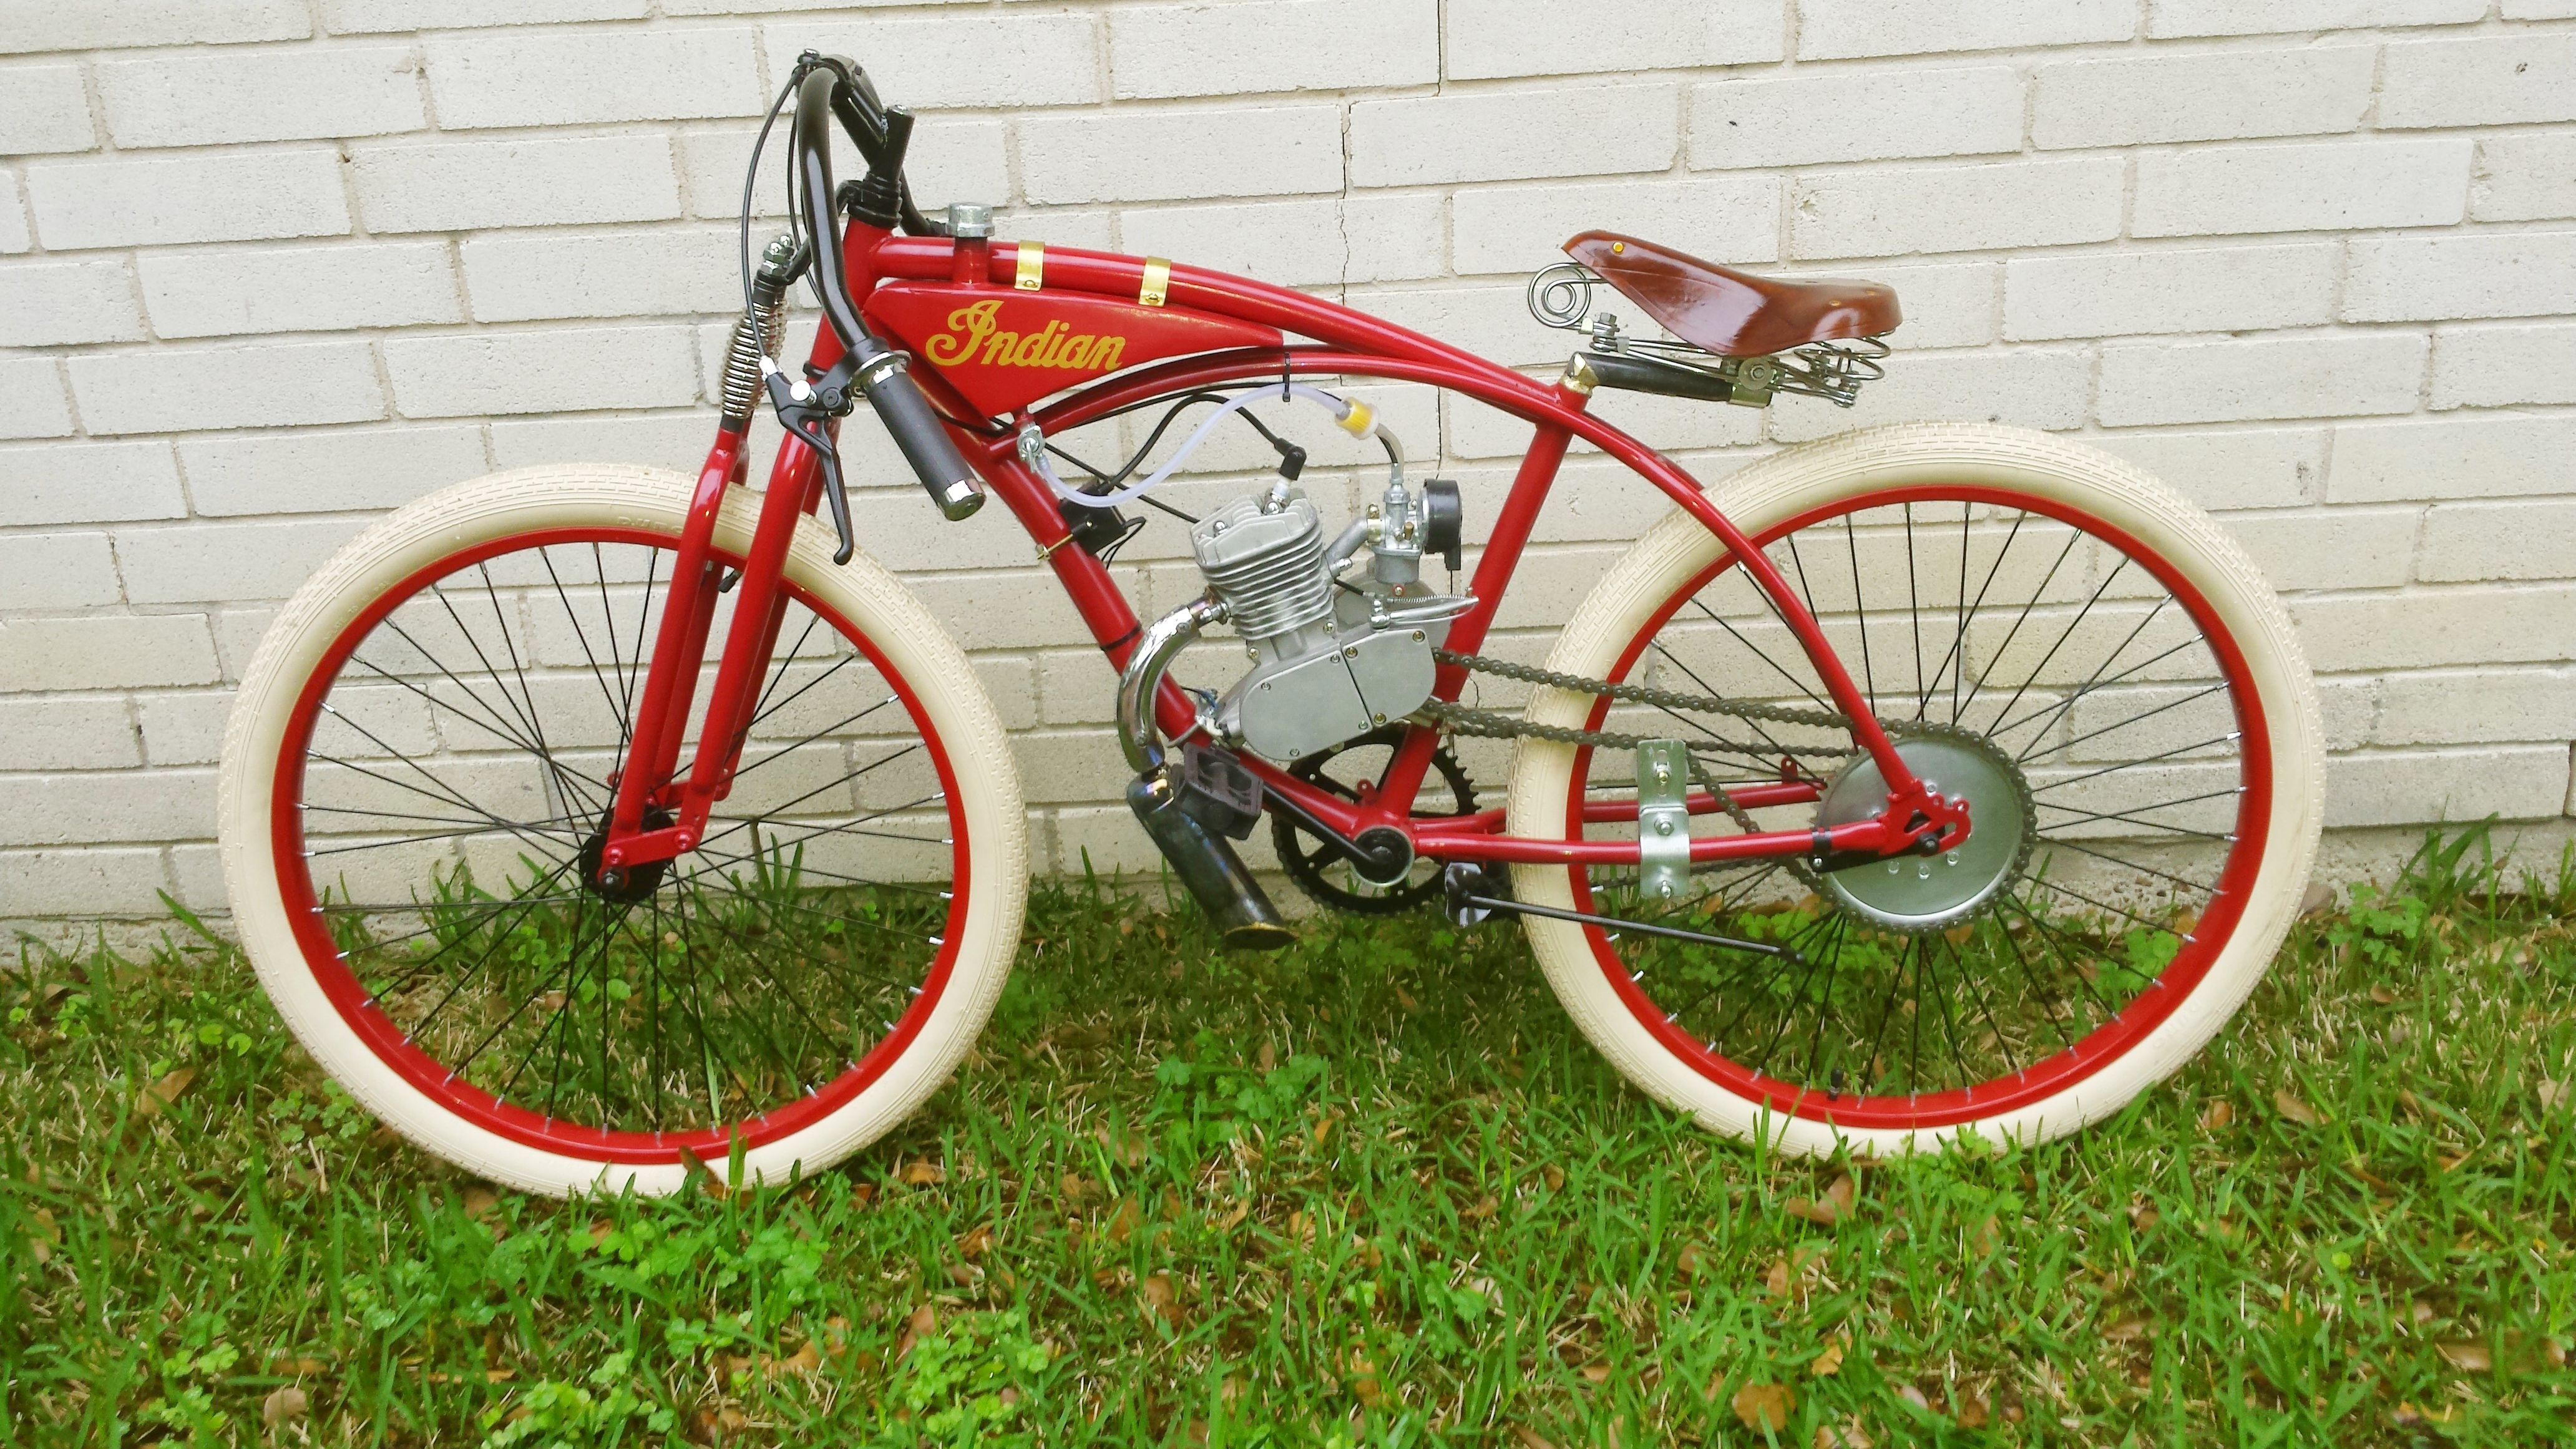 Indian Speedway Racer Motorized Bicycle Motorized Bicycle Bicycles For Sale Bicycle